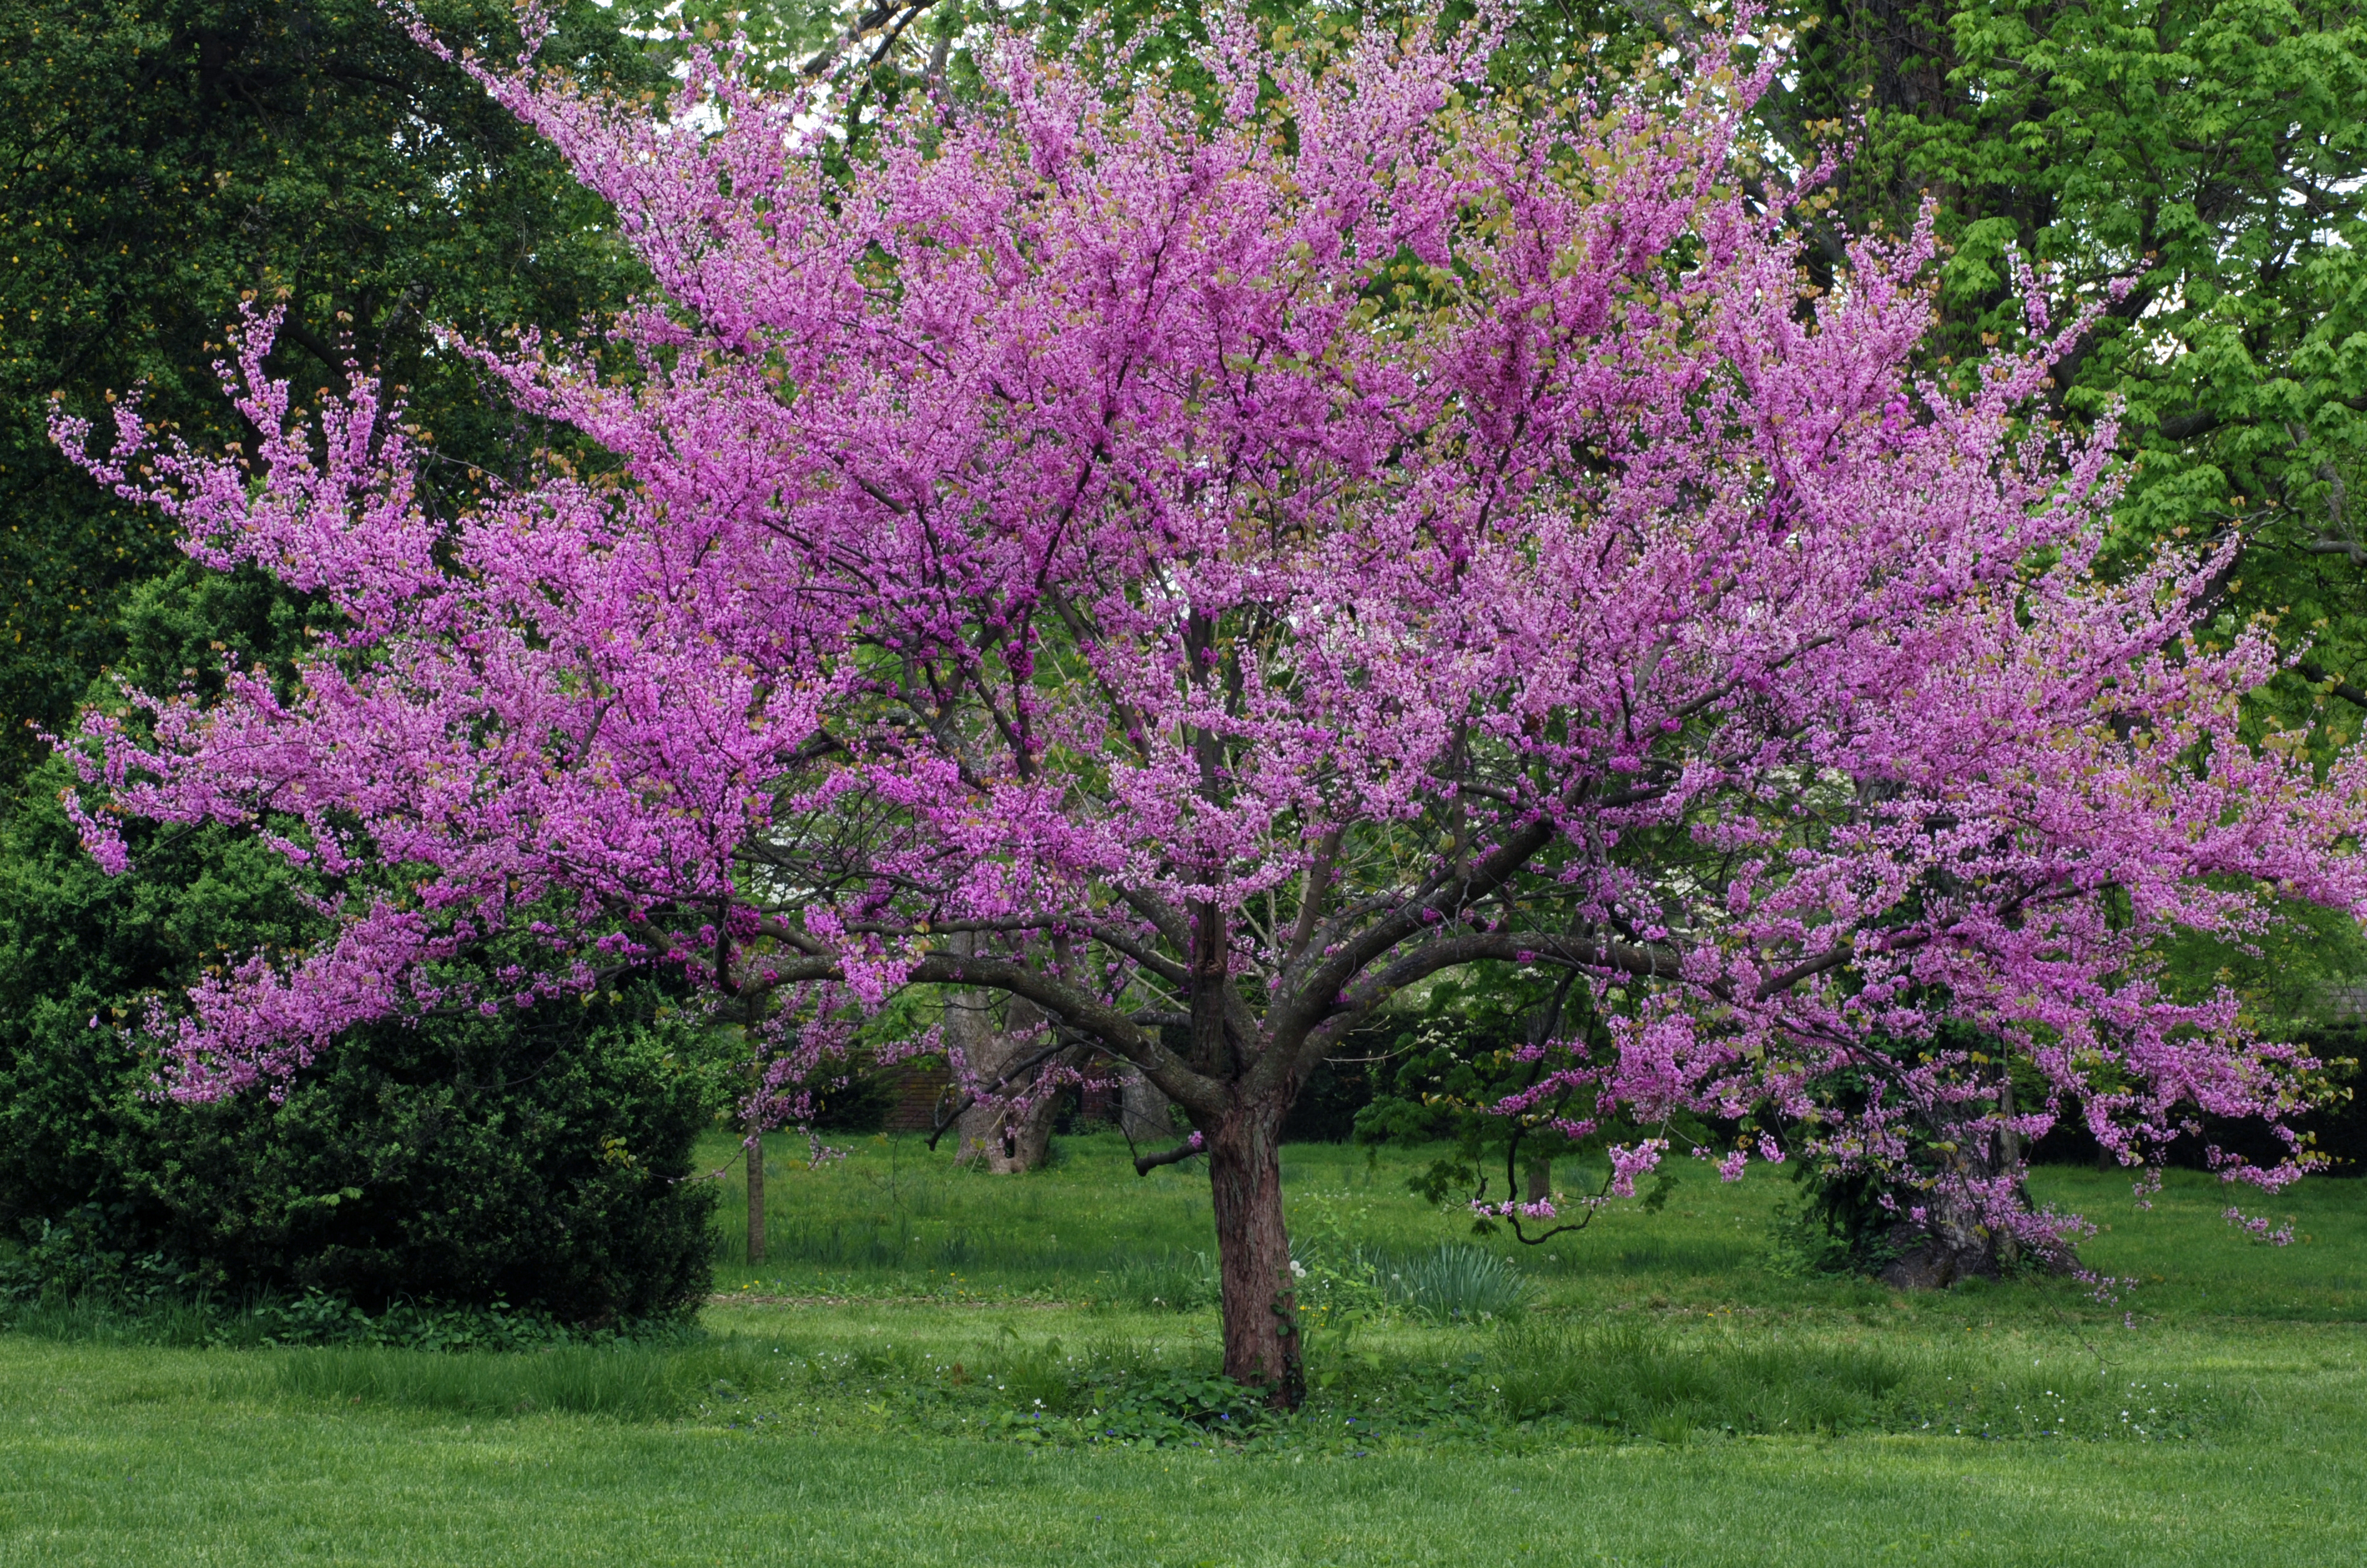 Purple buds blooming on landscaped tree on lawn.